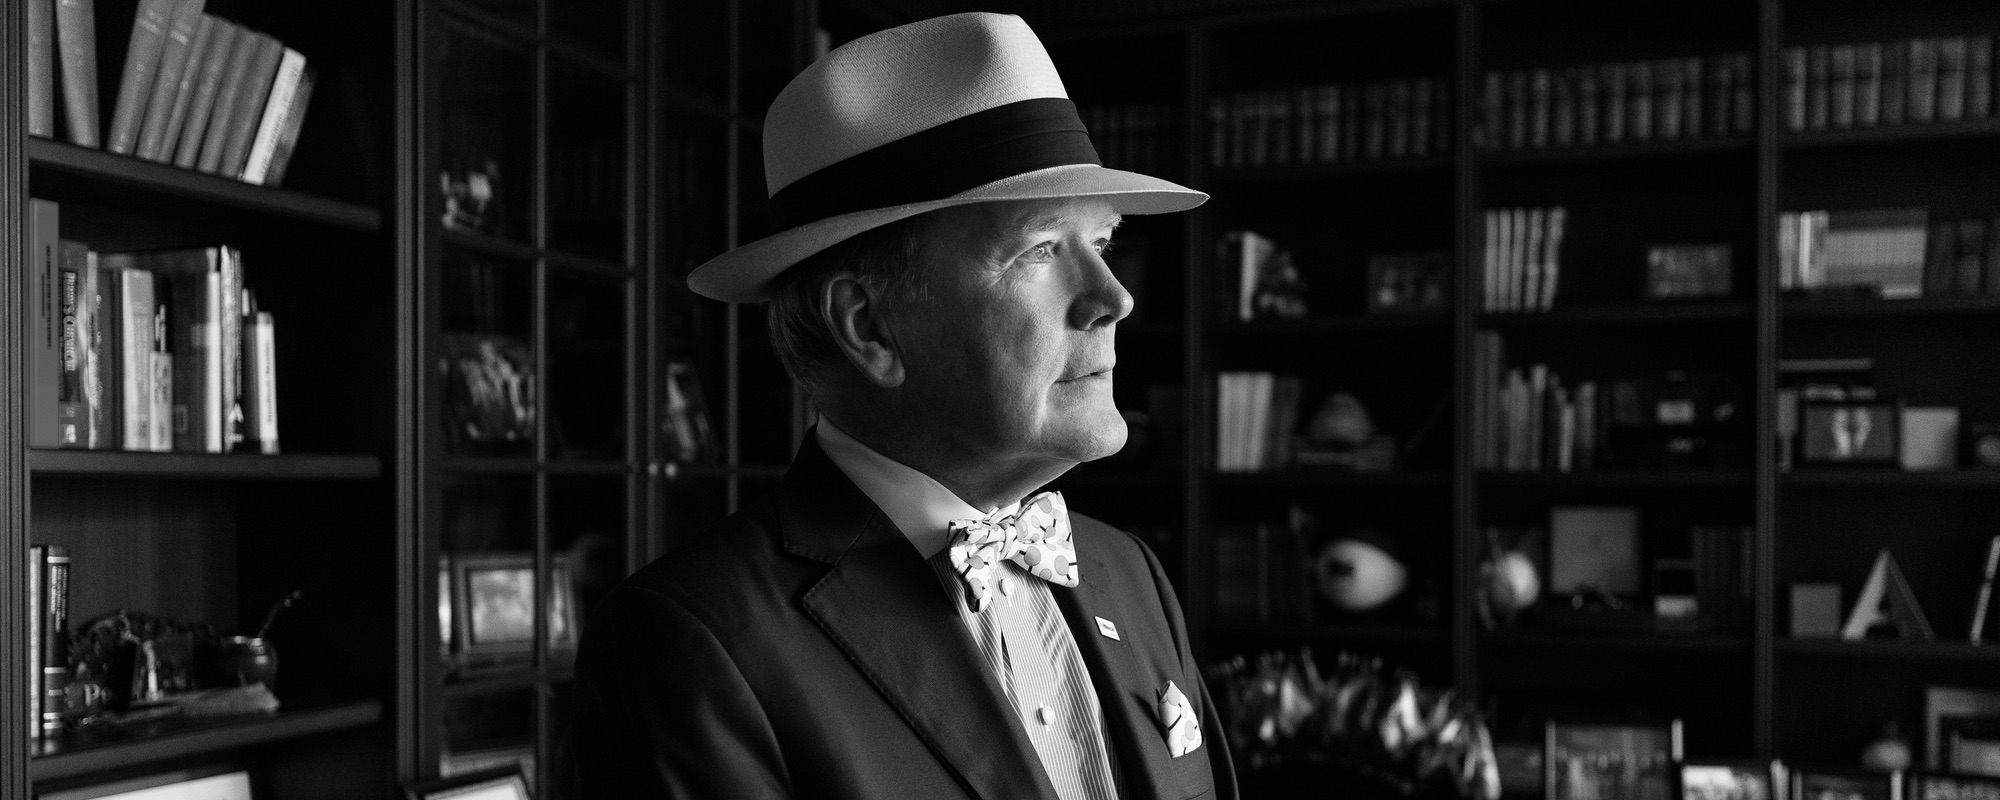 Dr. Pearse Lyons Interview